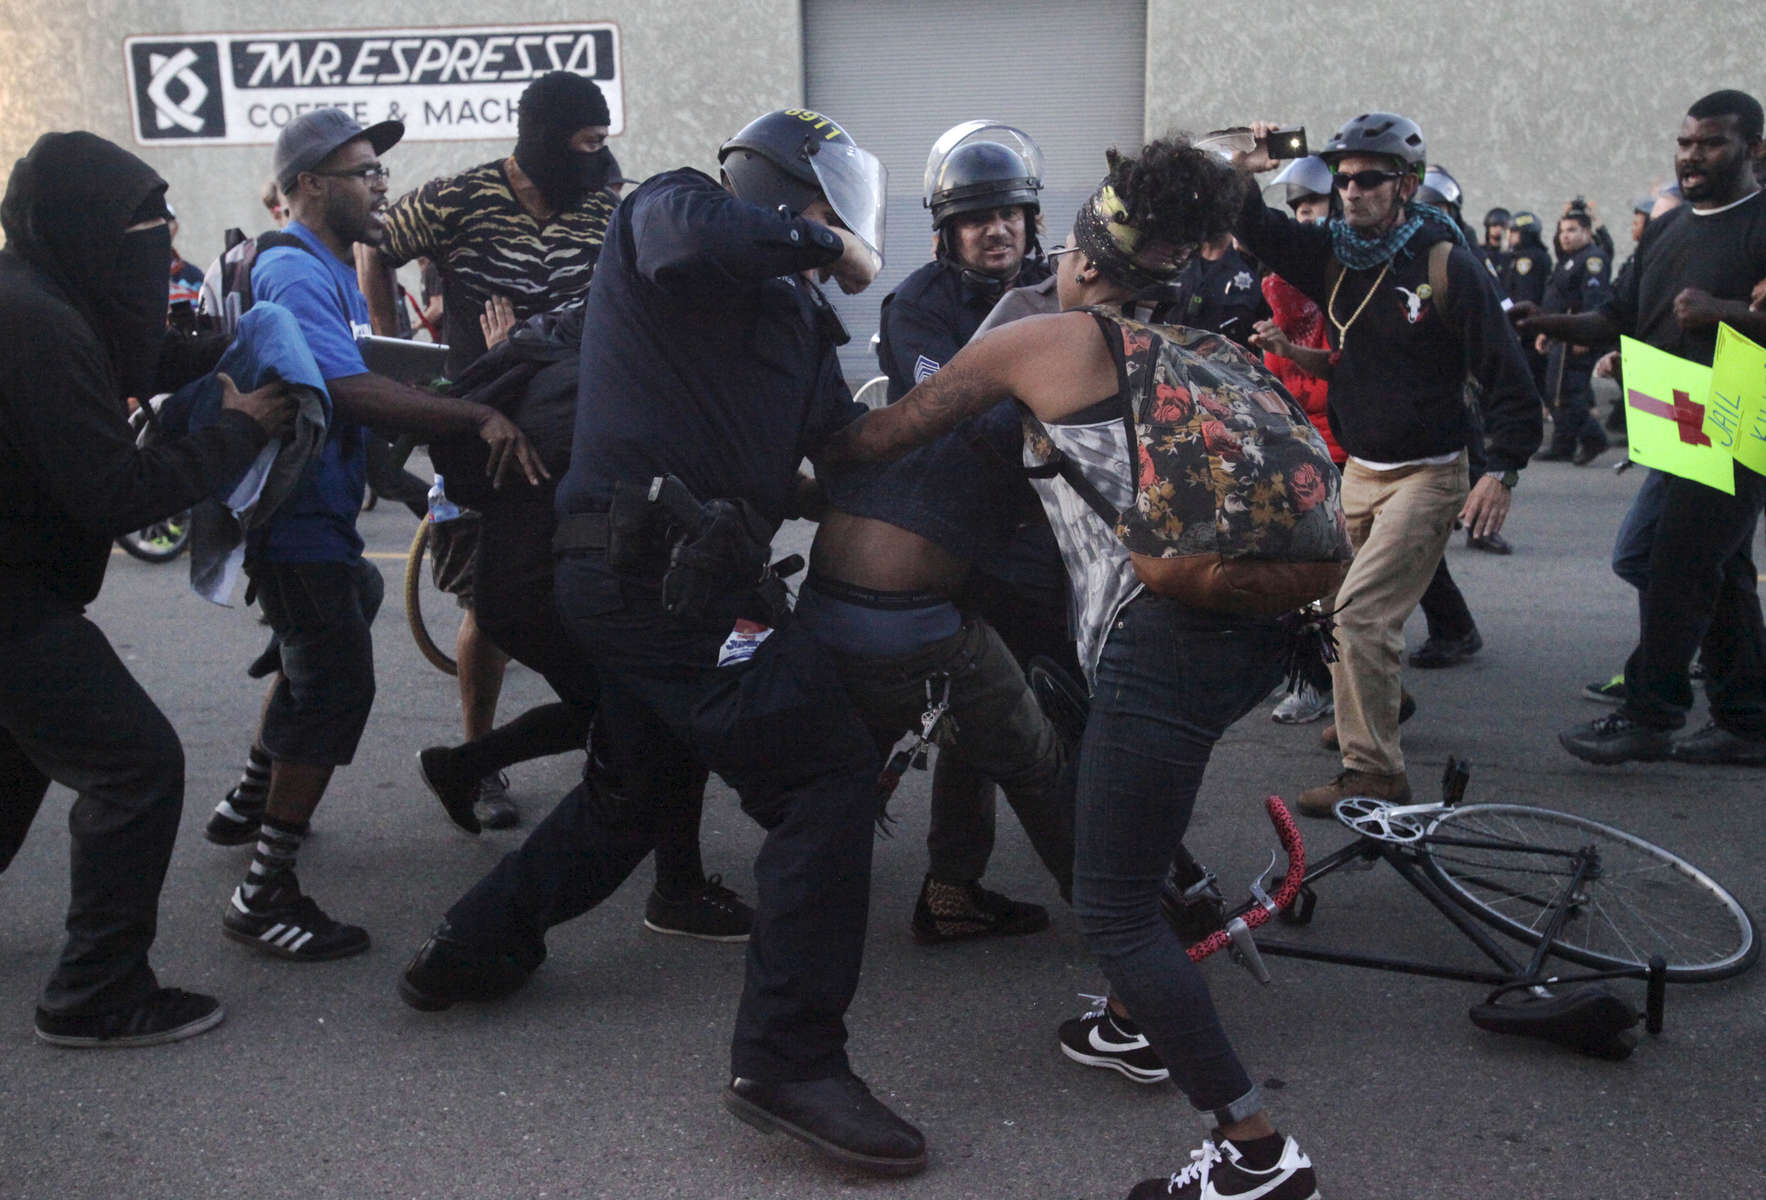 A woman tries to pull a protester from police officers after a scuffle broke out between them during an {quote}F the Police{quote} march held in solidarity with Ferguson, Mo., where there was a fatal shooting of an unarmed 18-year-old black man earlier in the week August 15, 2014 in Oakland, Calif.